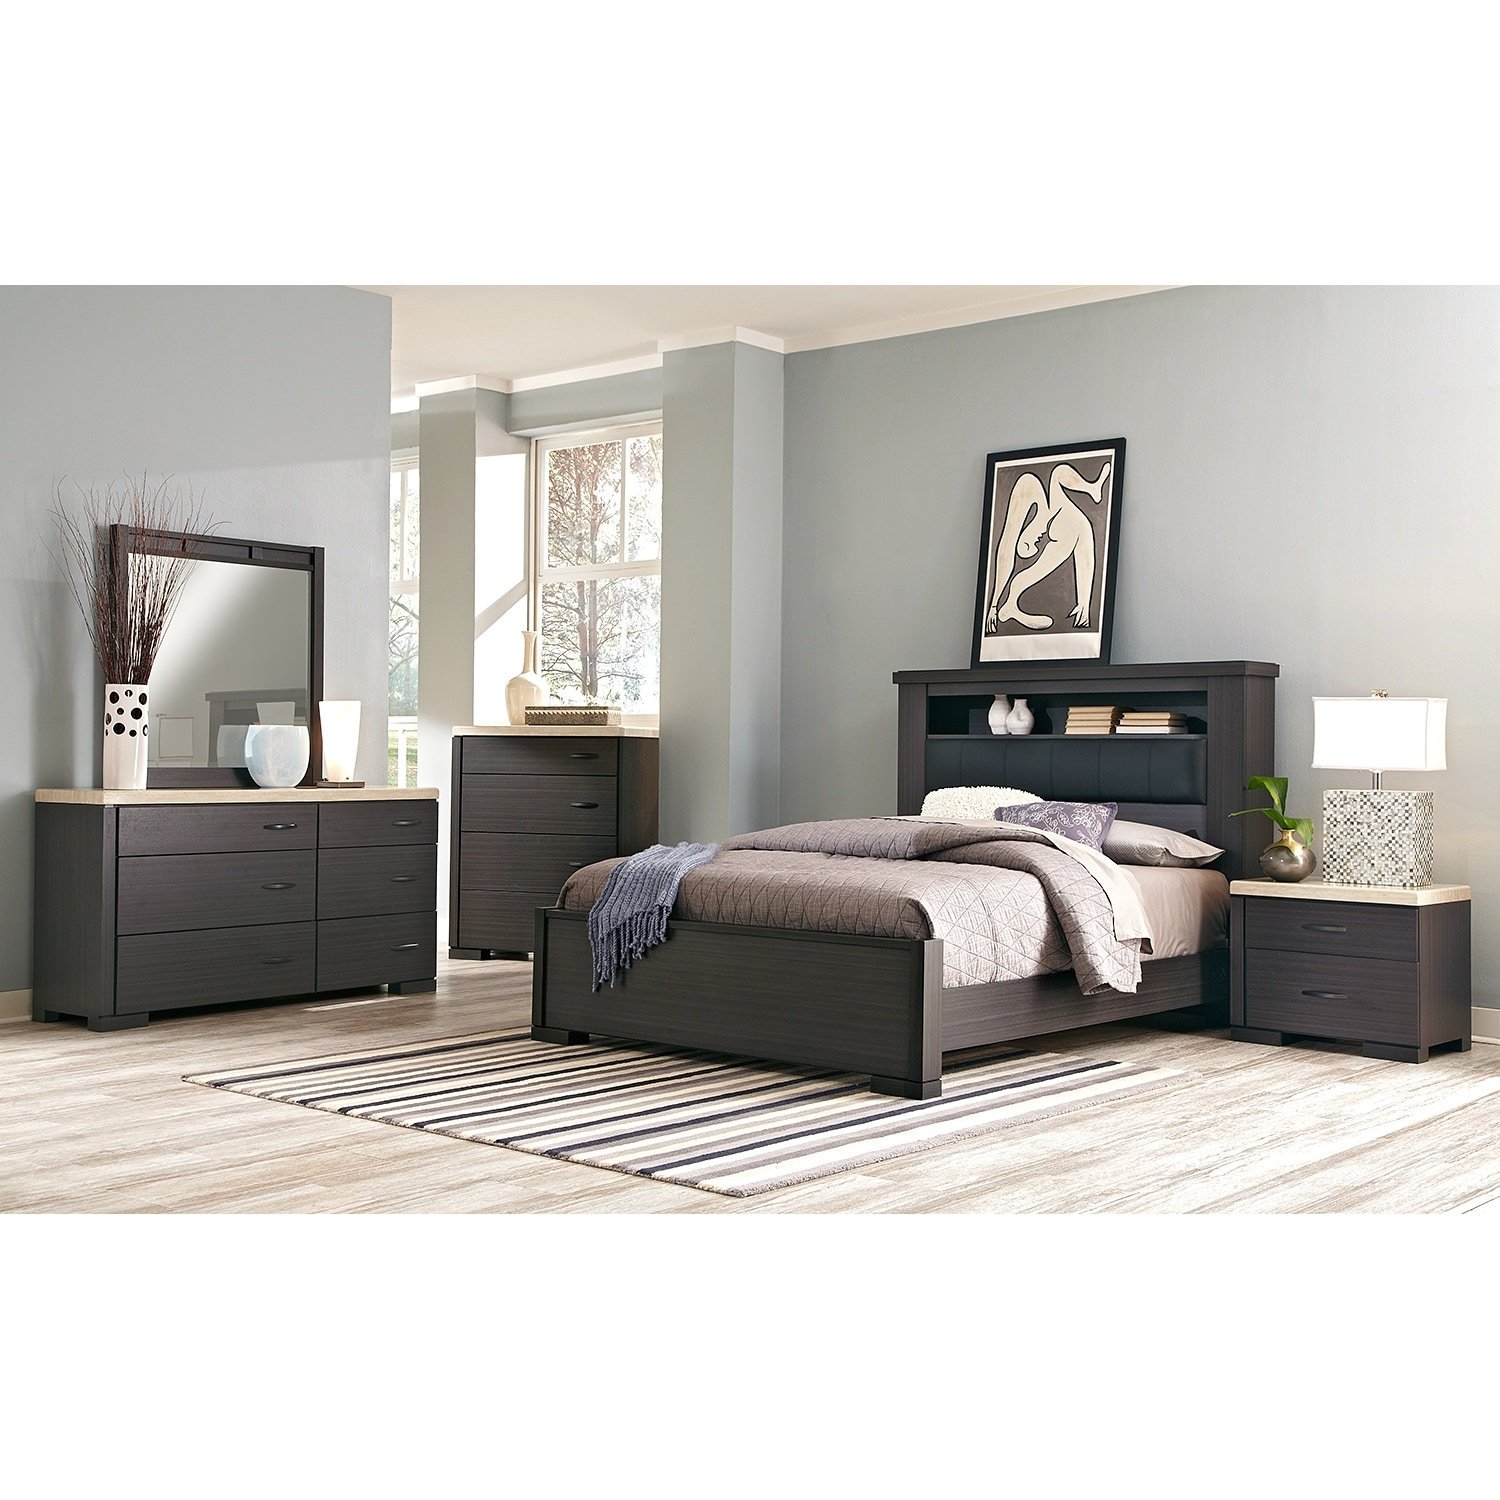 Camino 7 piece king bedroom set charcoal and ivory for King bedroom furniture